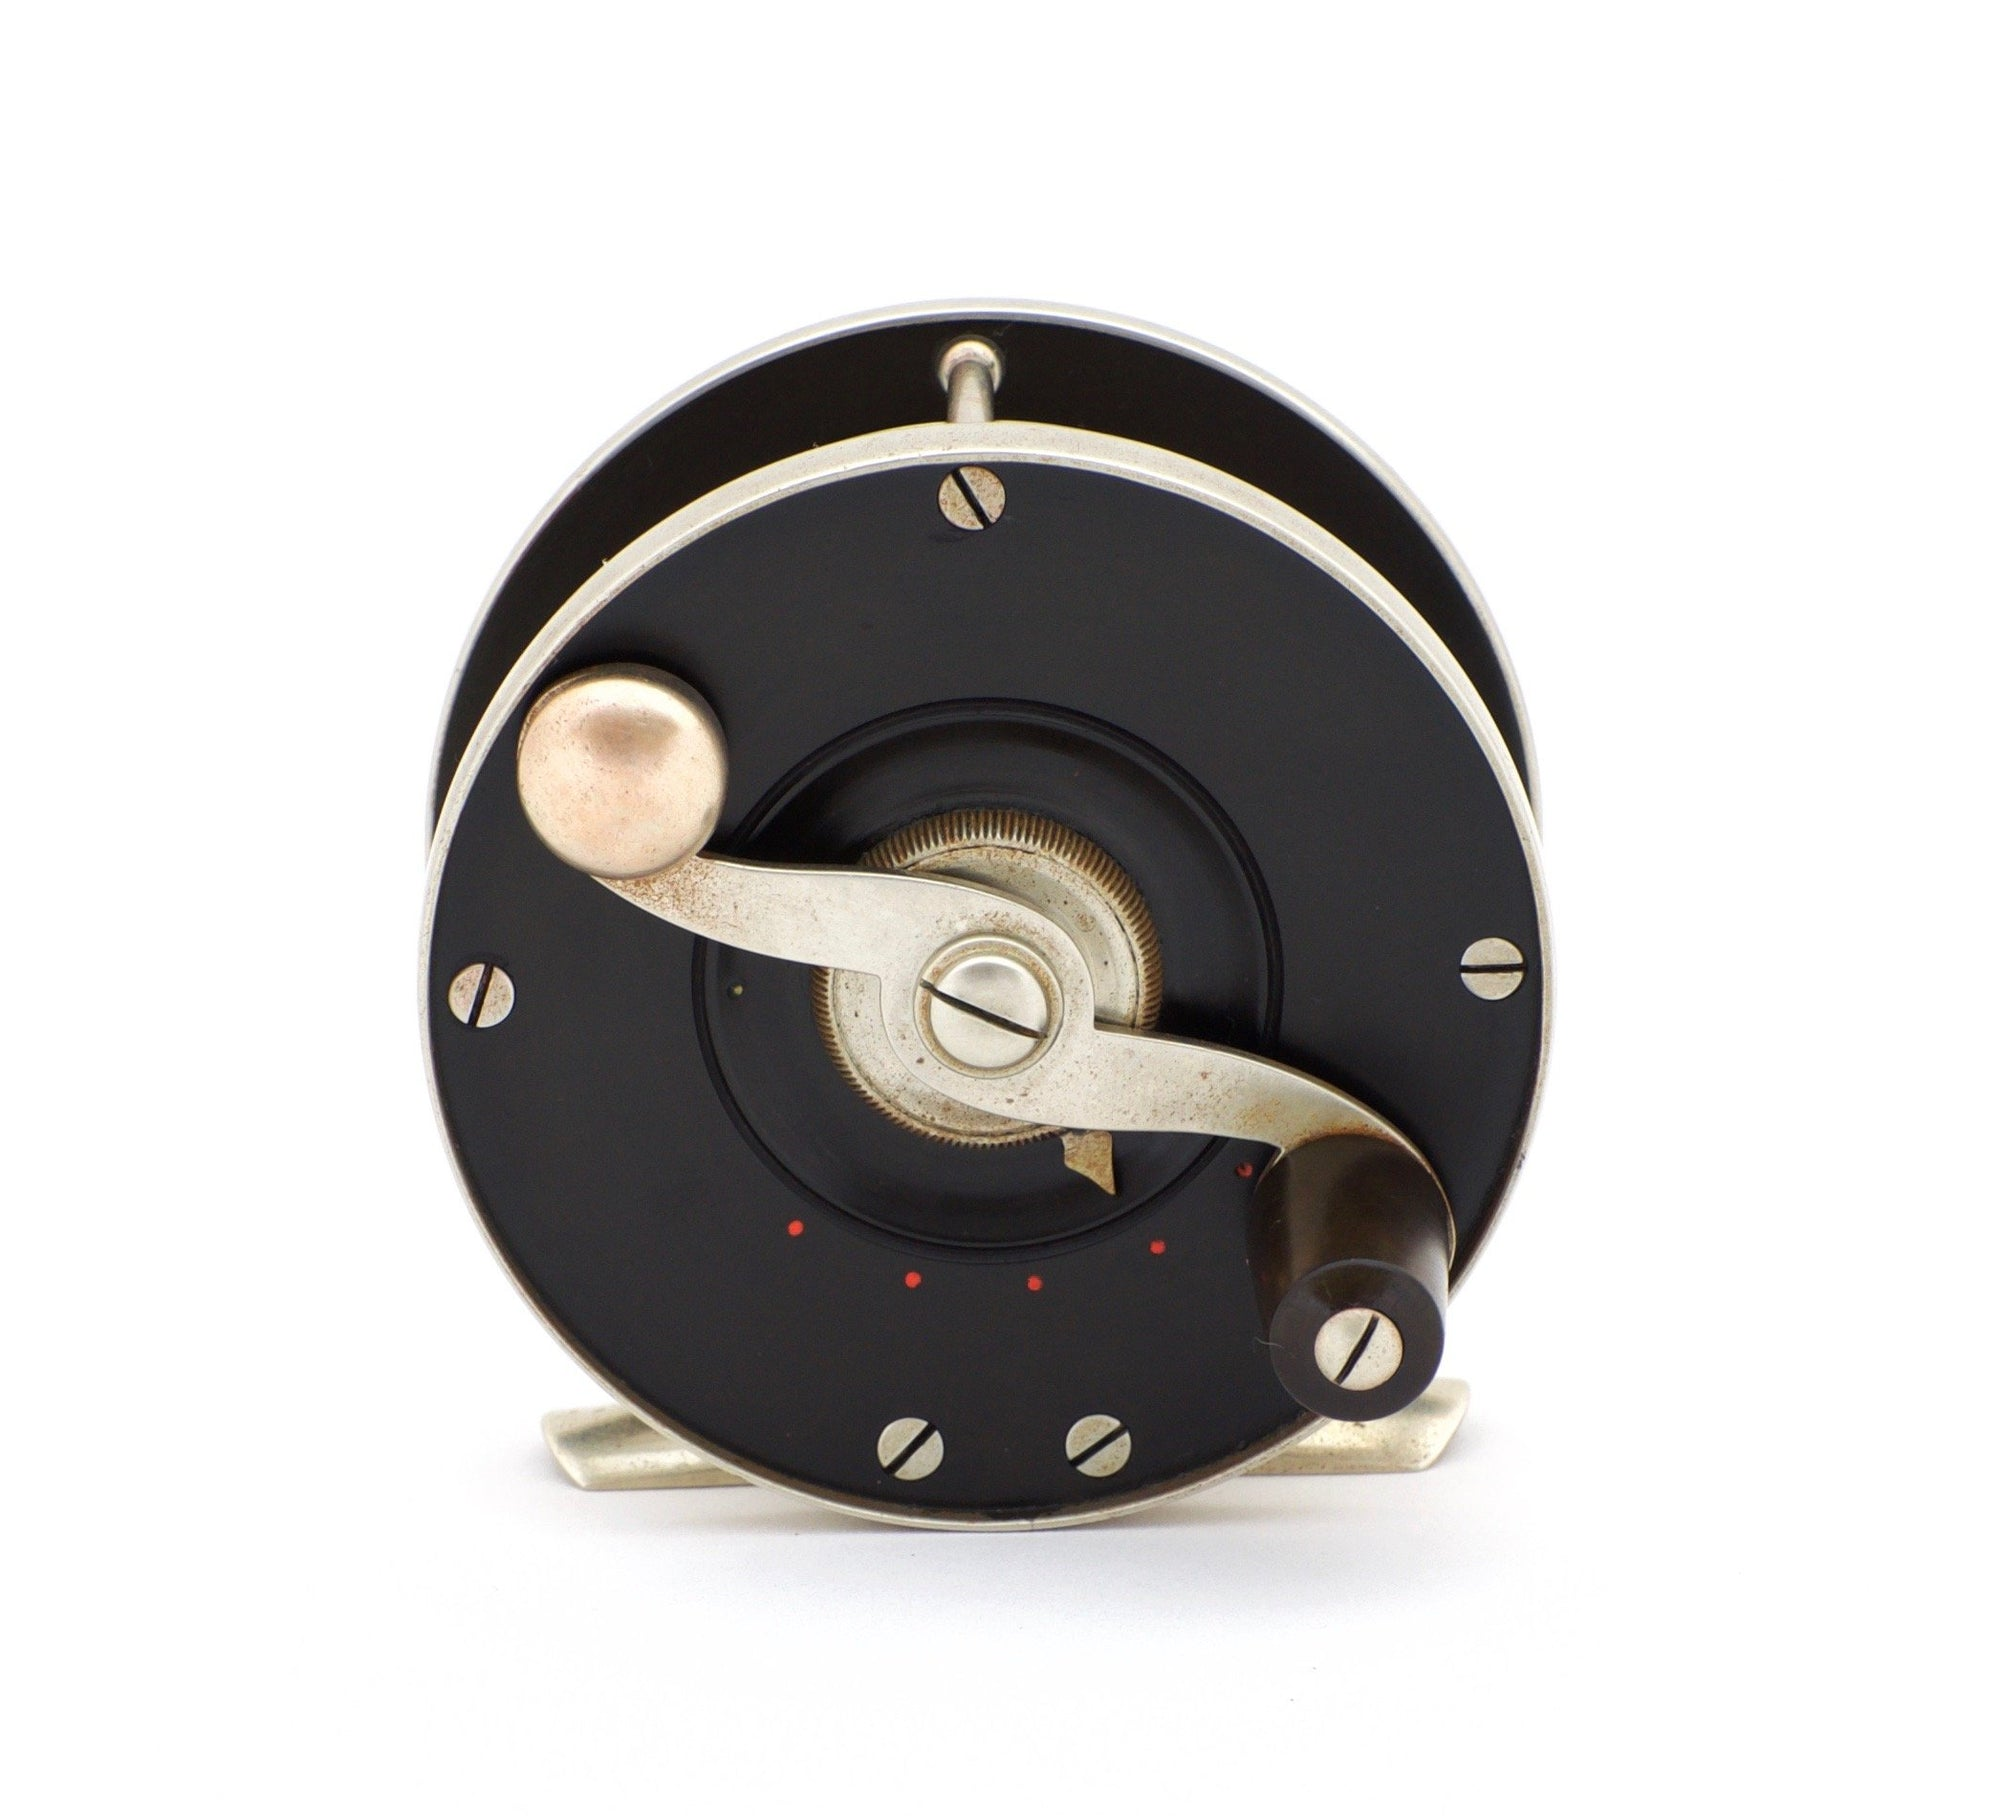 Vom Hofe, Edward - Model 360 Perfection Size 2 Fly Reel